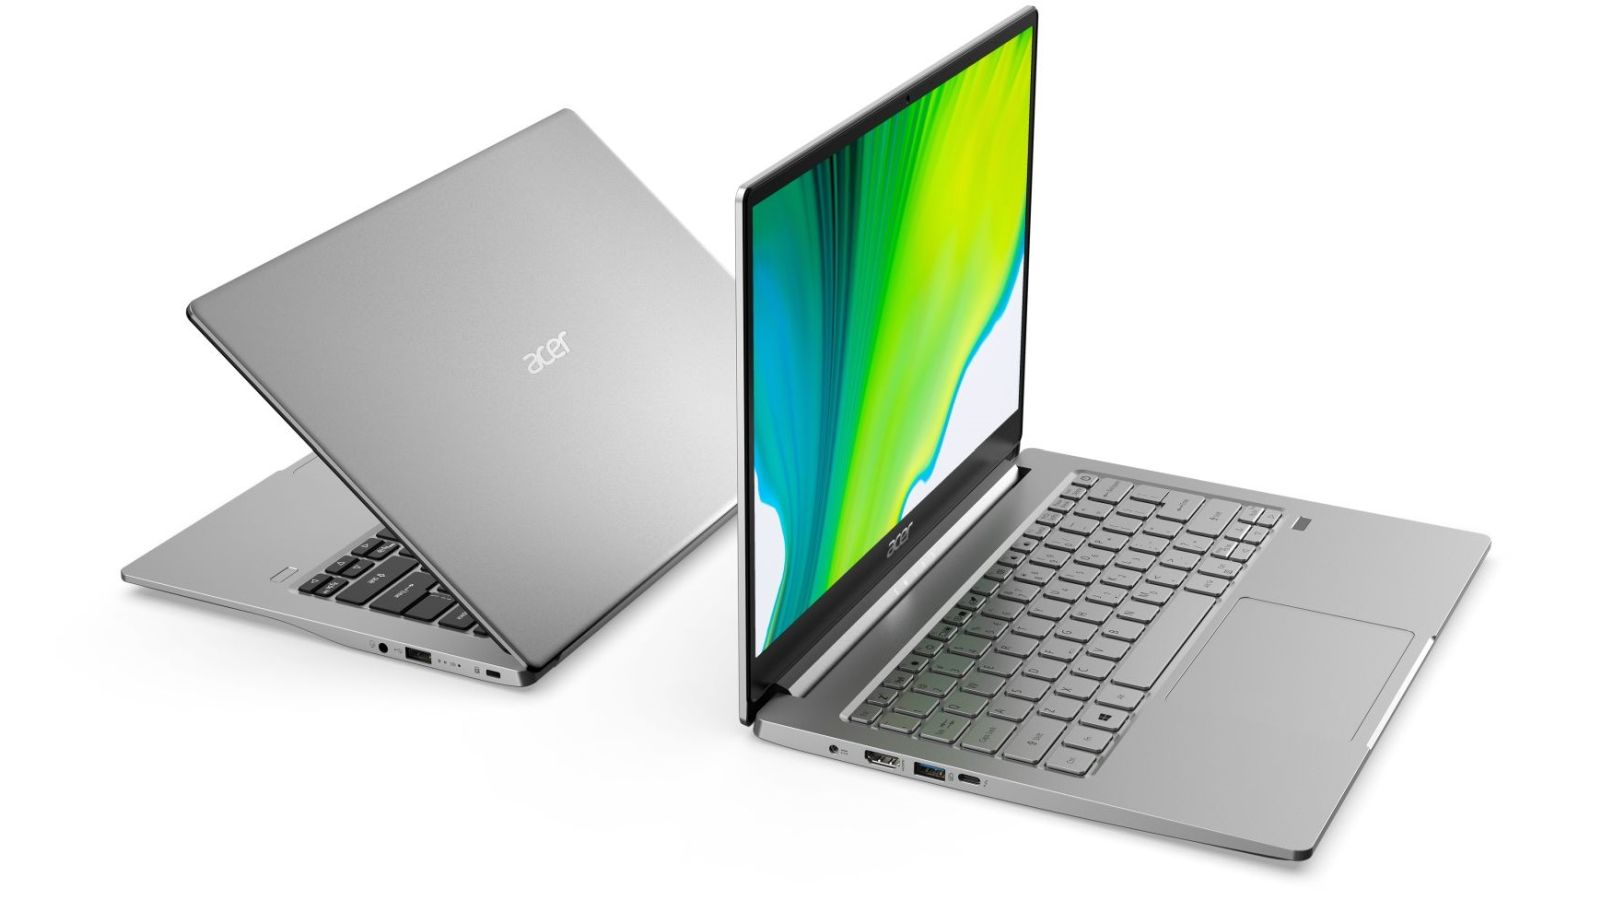 acer-announced-new-displays-desktops-pc-portables-workstations-at-ces-2020